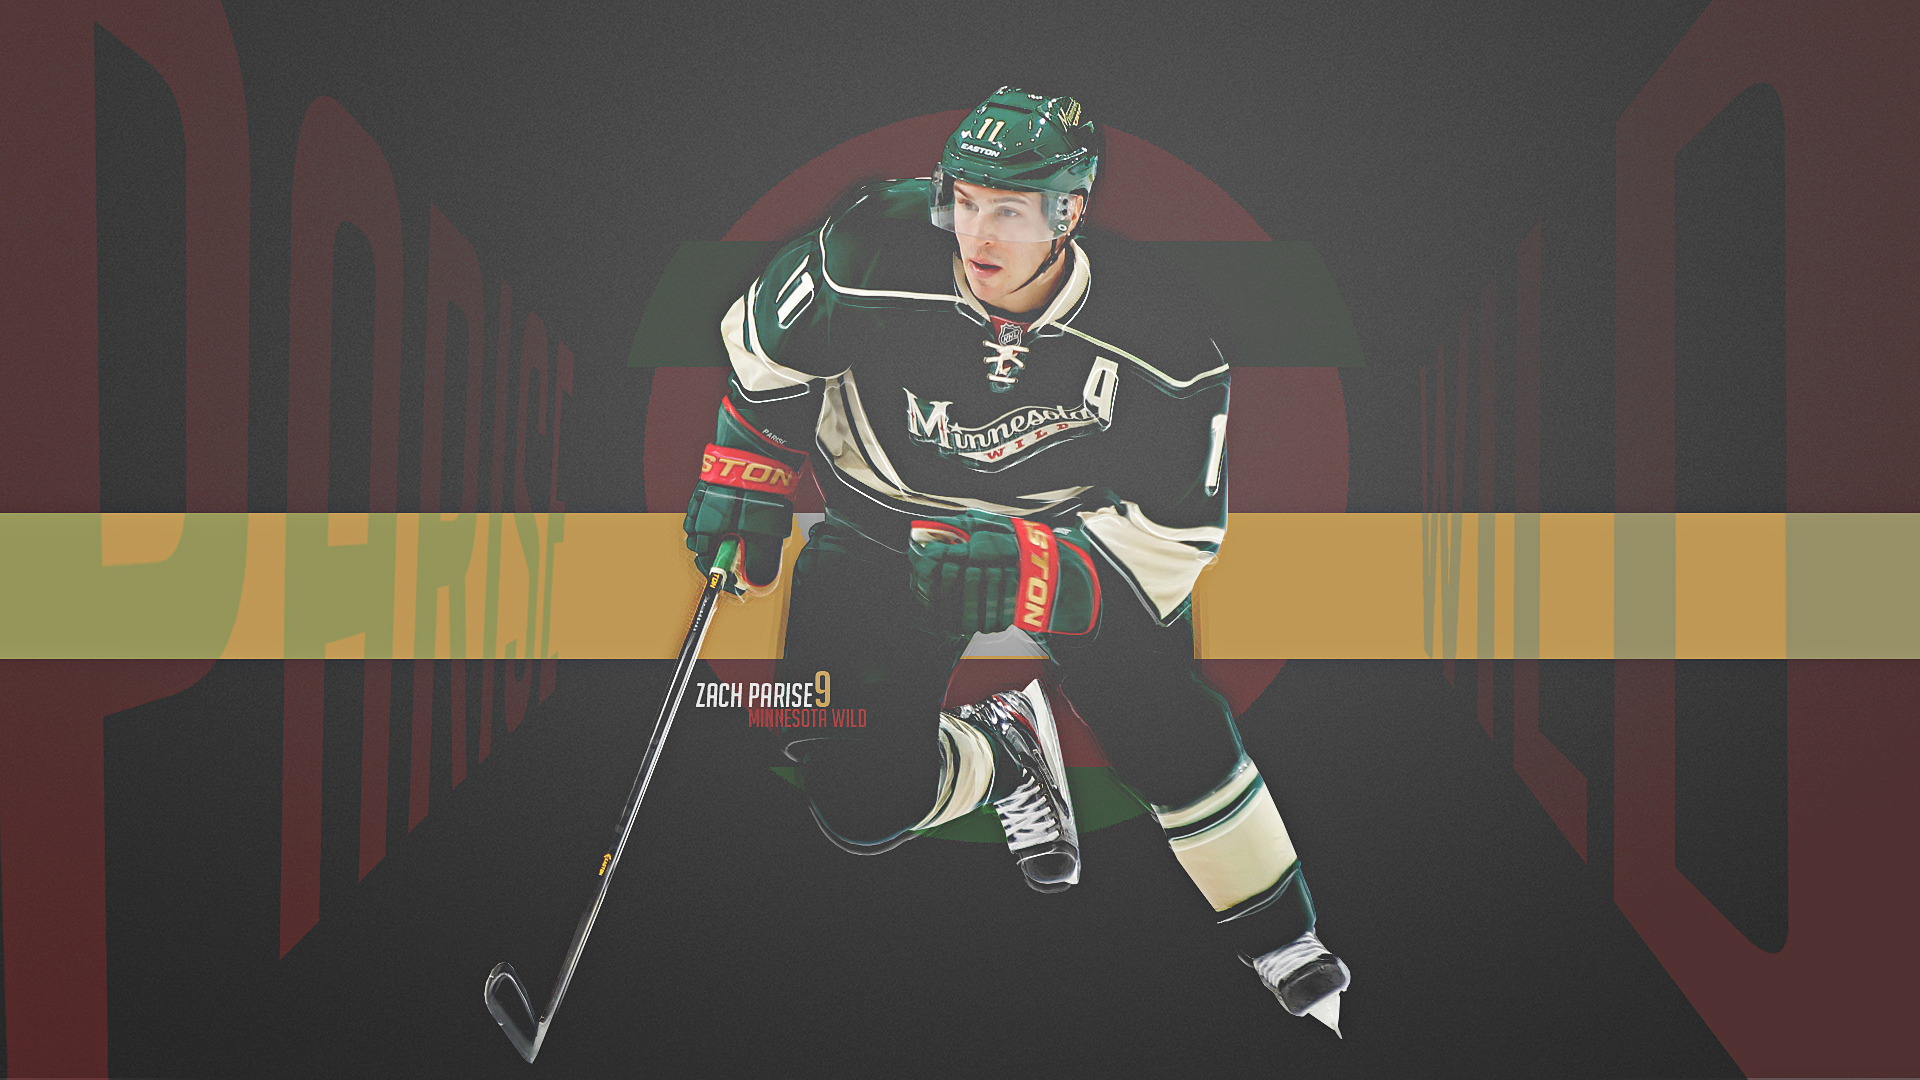 Zach Parise wallpapers and image